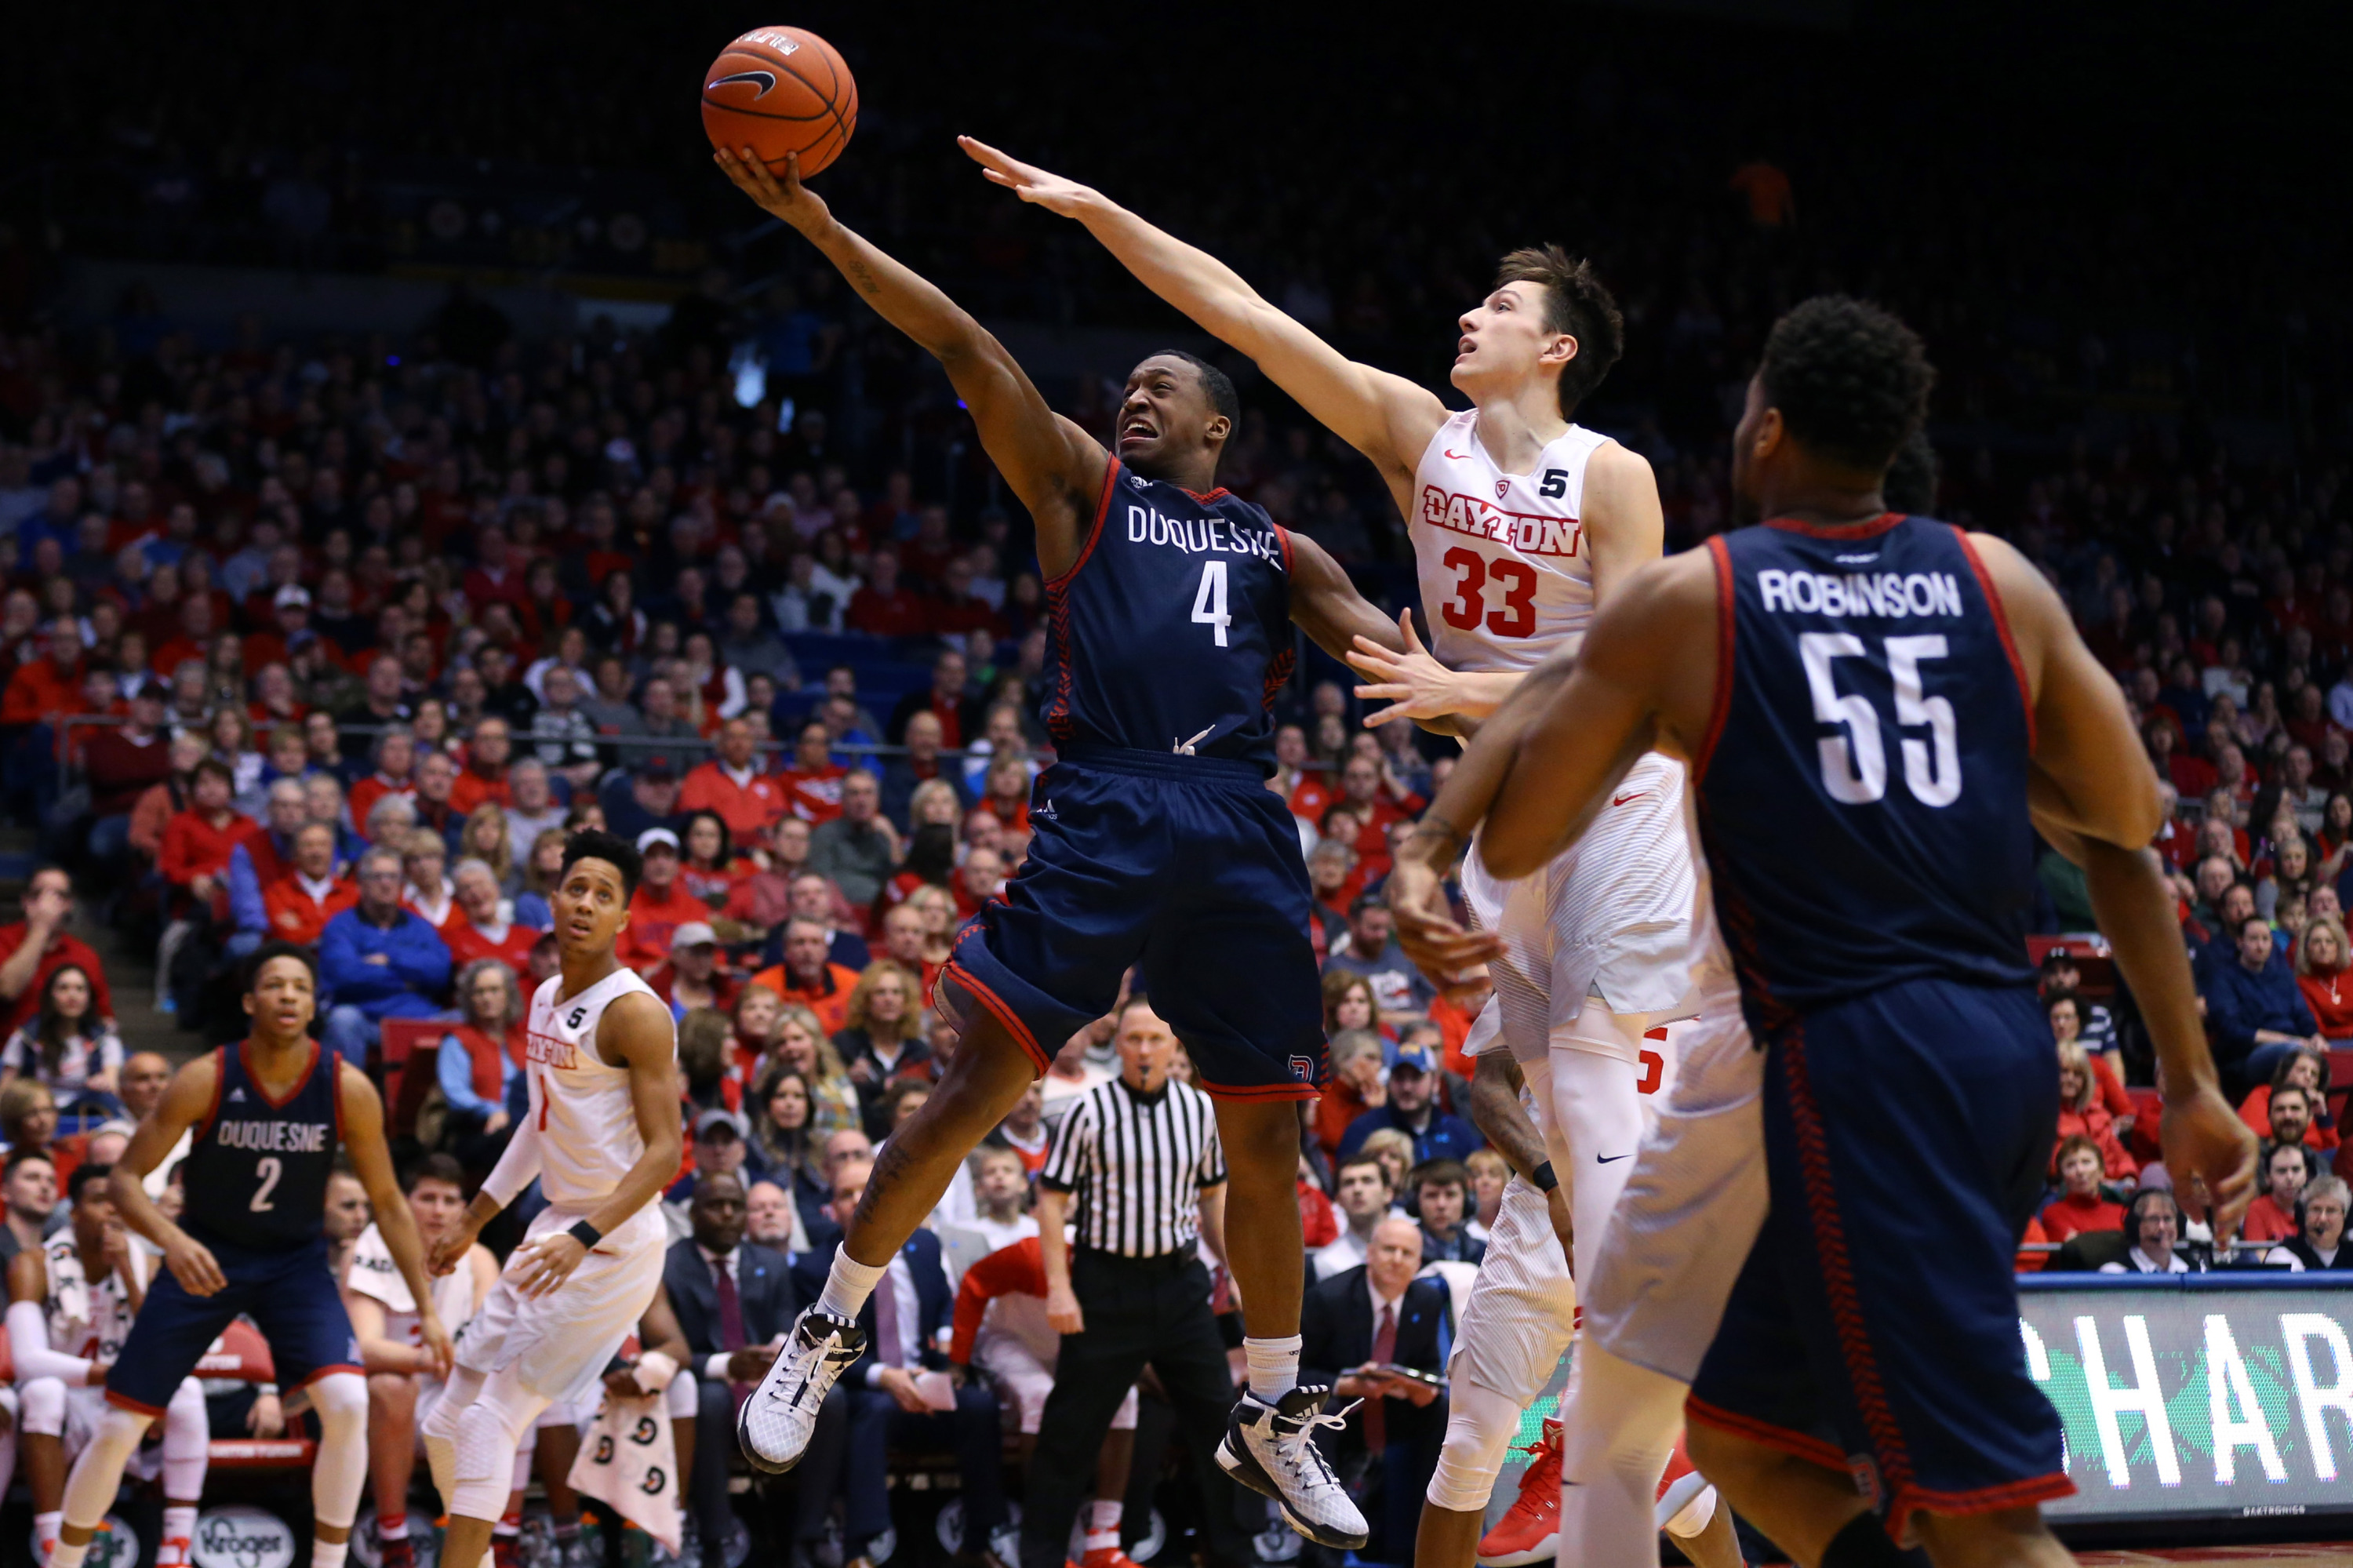 Duquesne's Dec. 30 vs. Dayton is one of four that will air of AT&T SportsNet Pittsburgh.